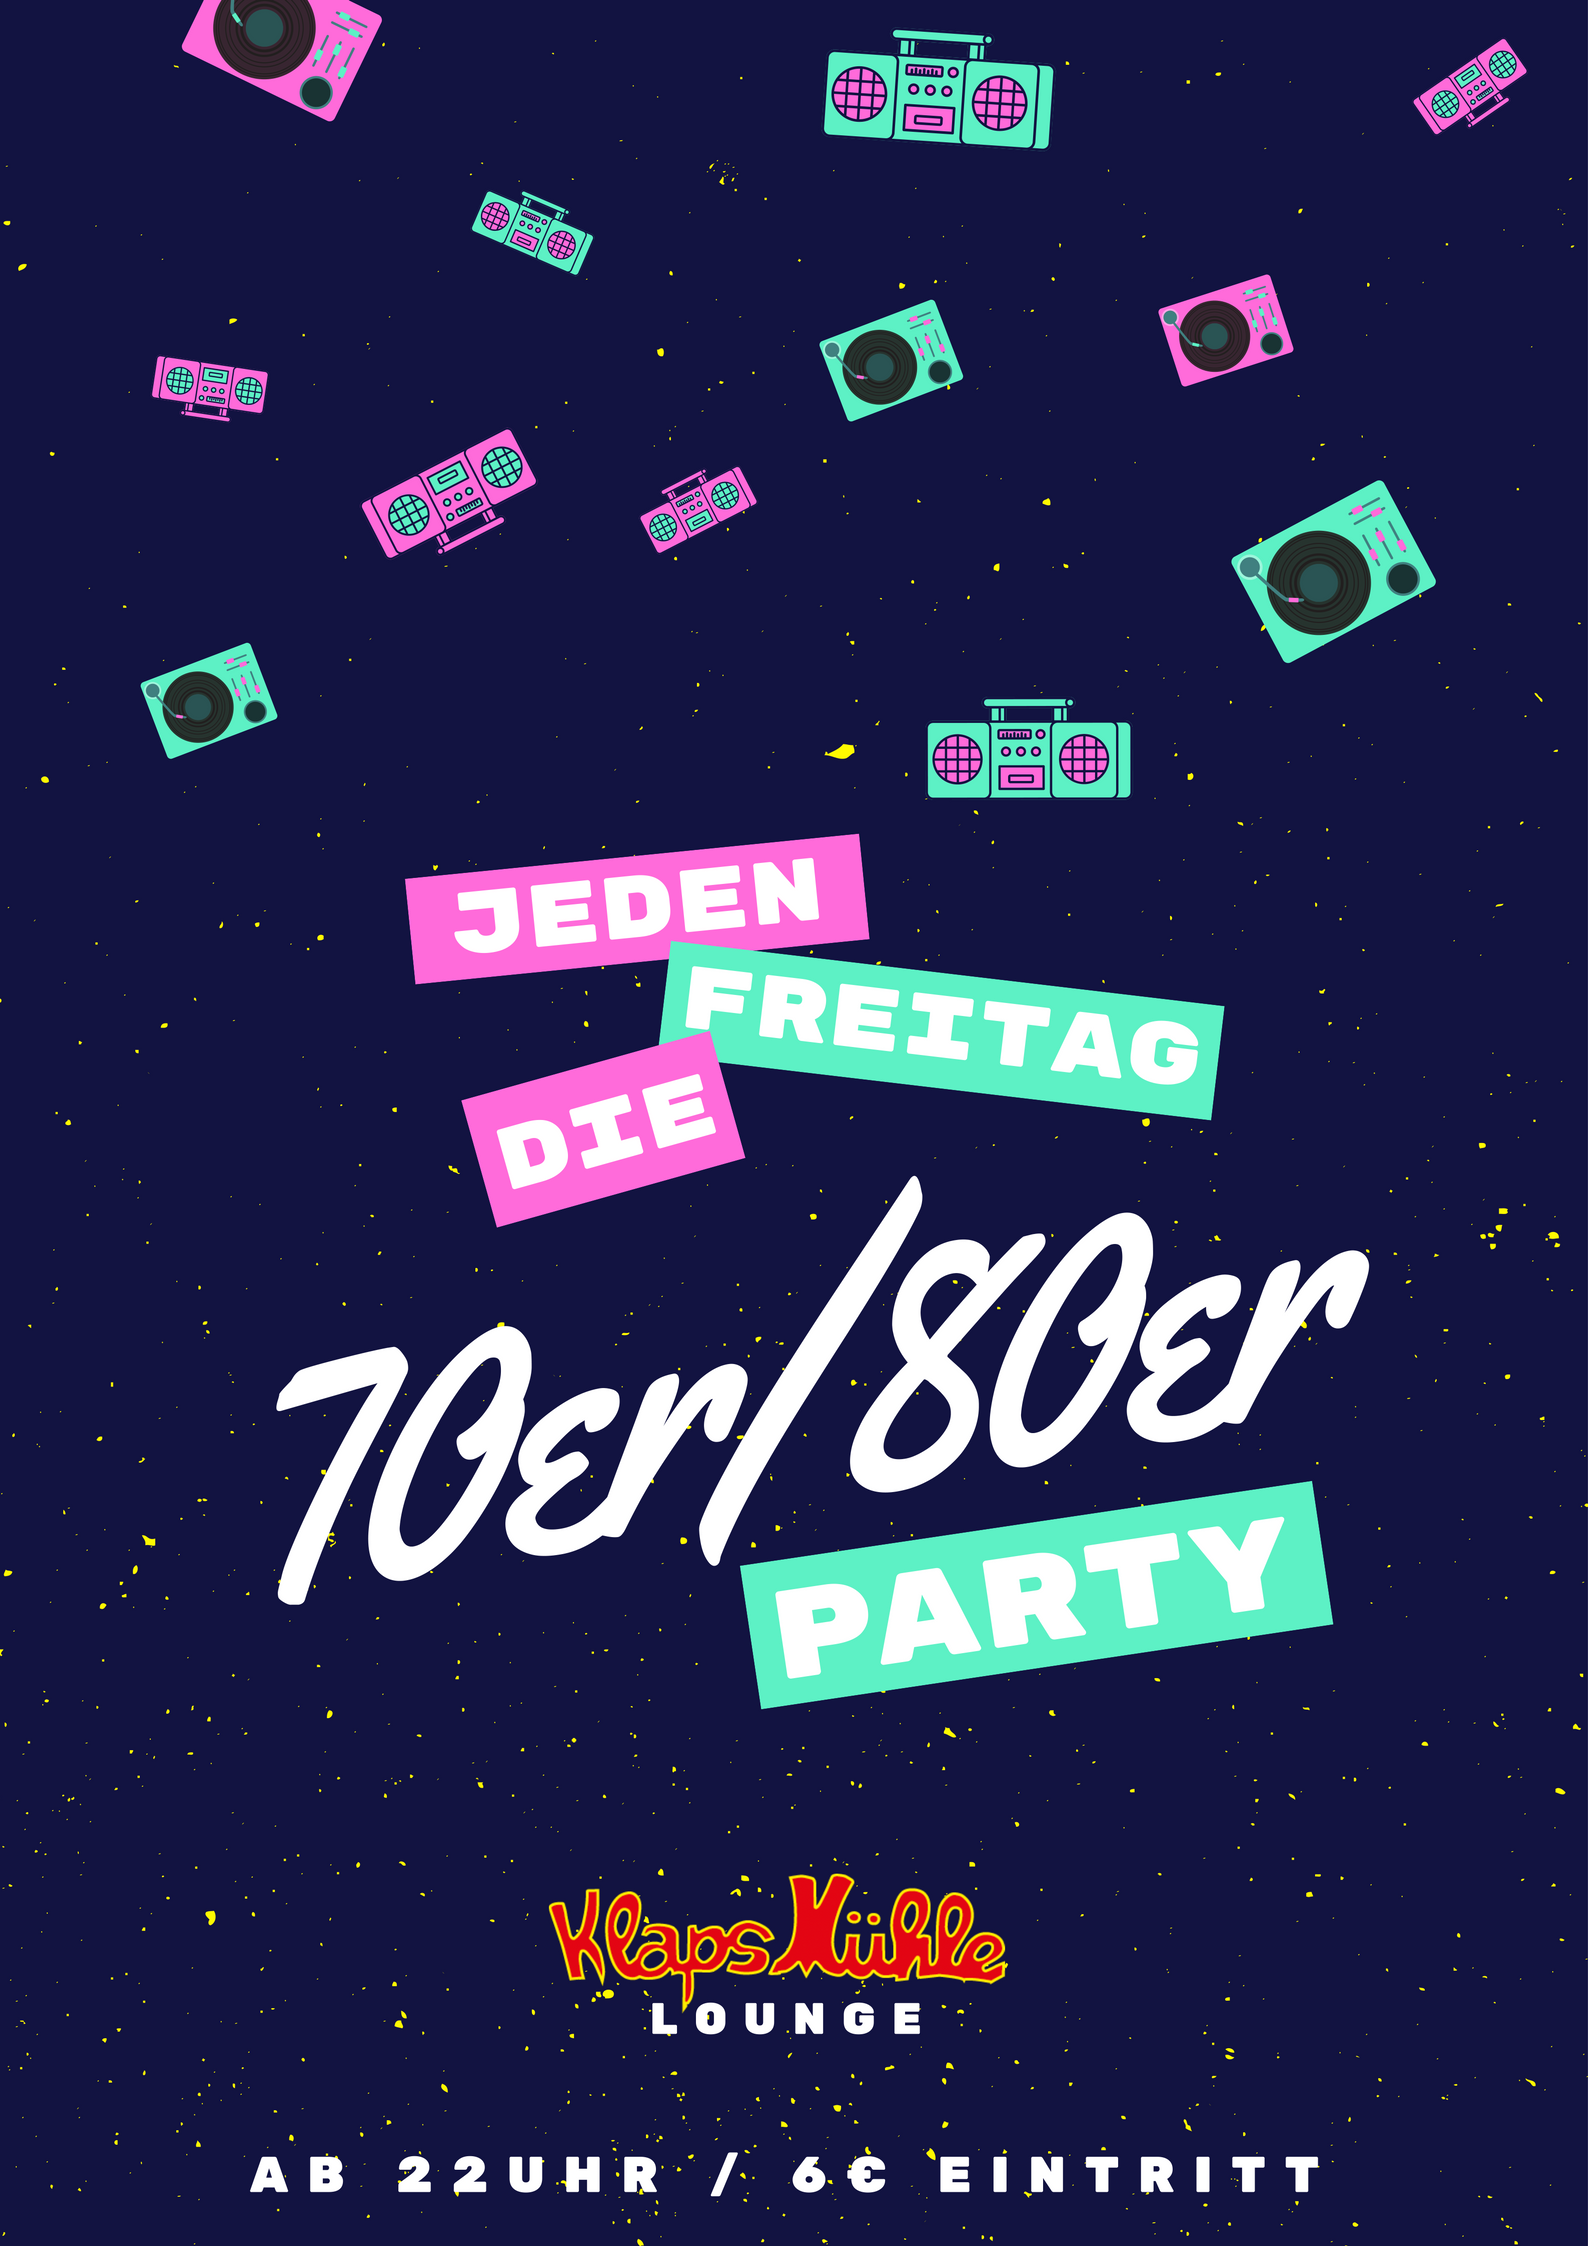 Die 70er/80er Party in Köln am 08.12.2017, Klapsmühle Lounge